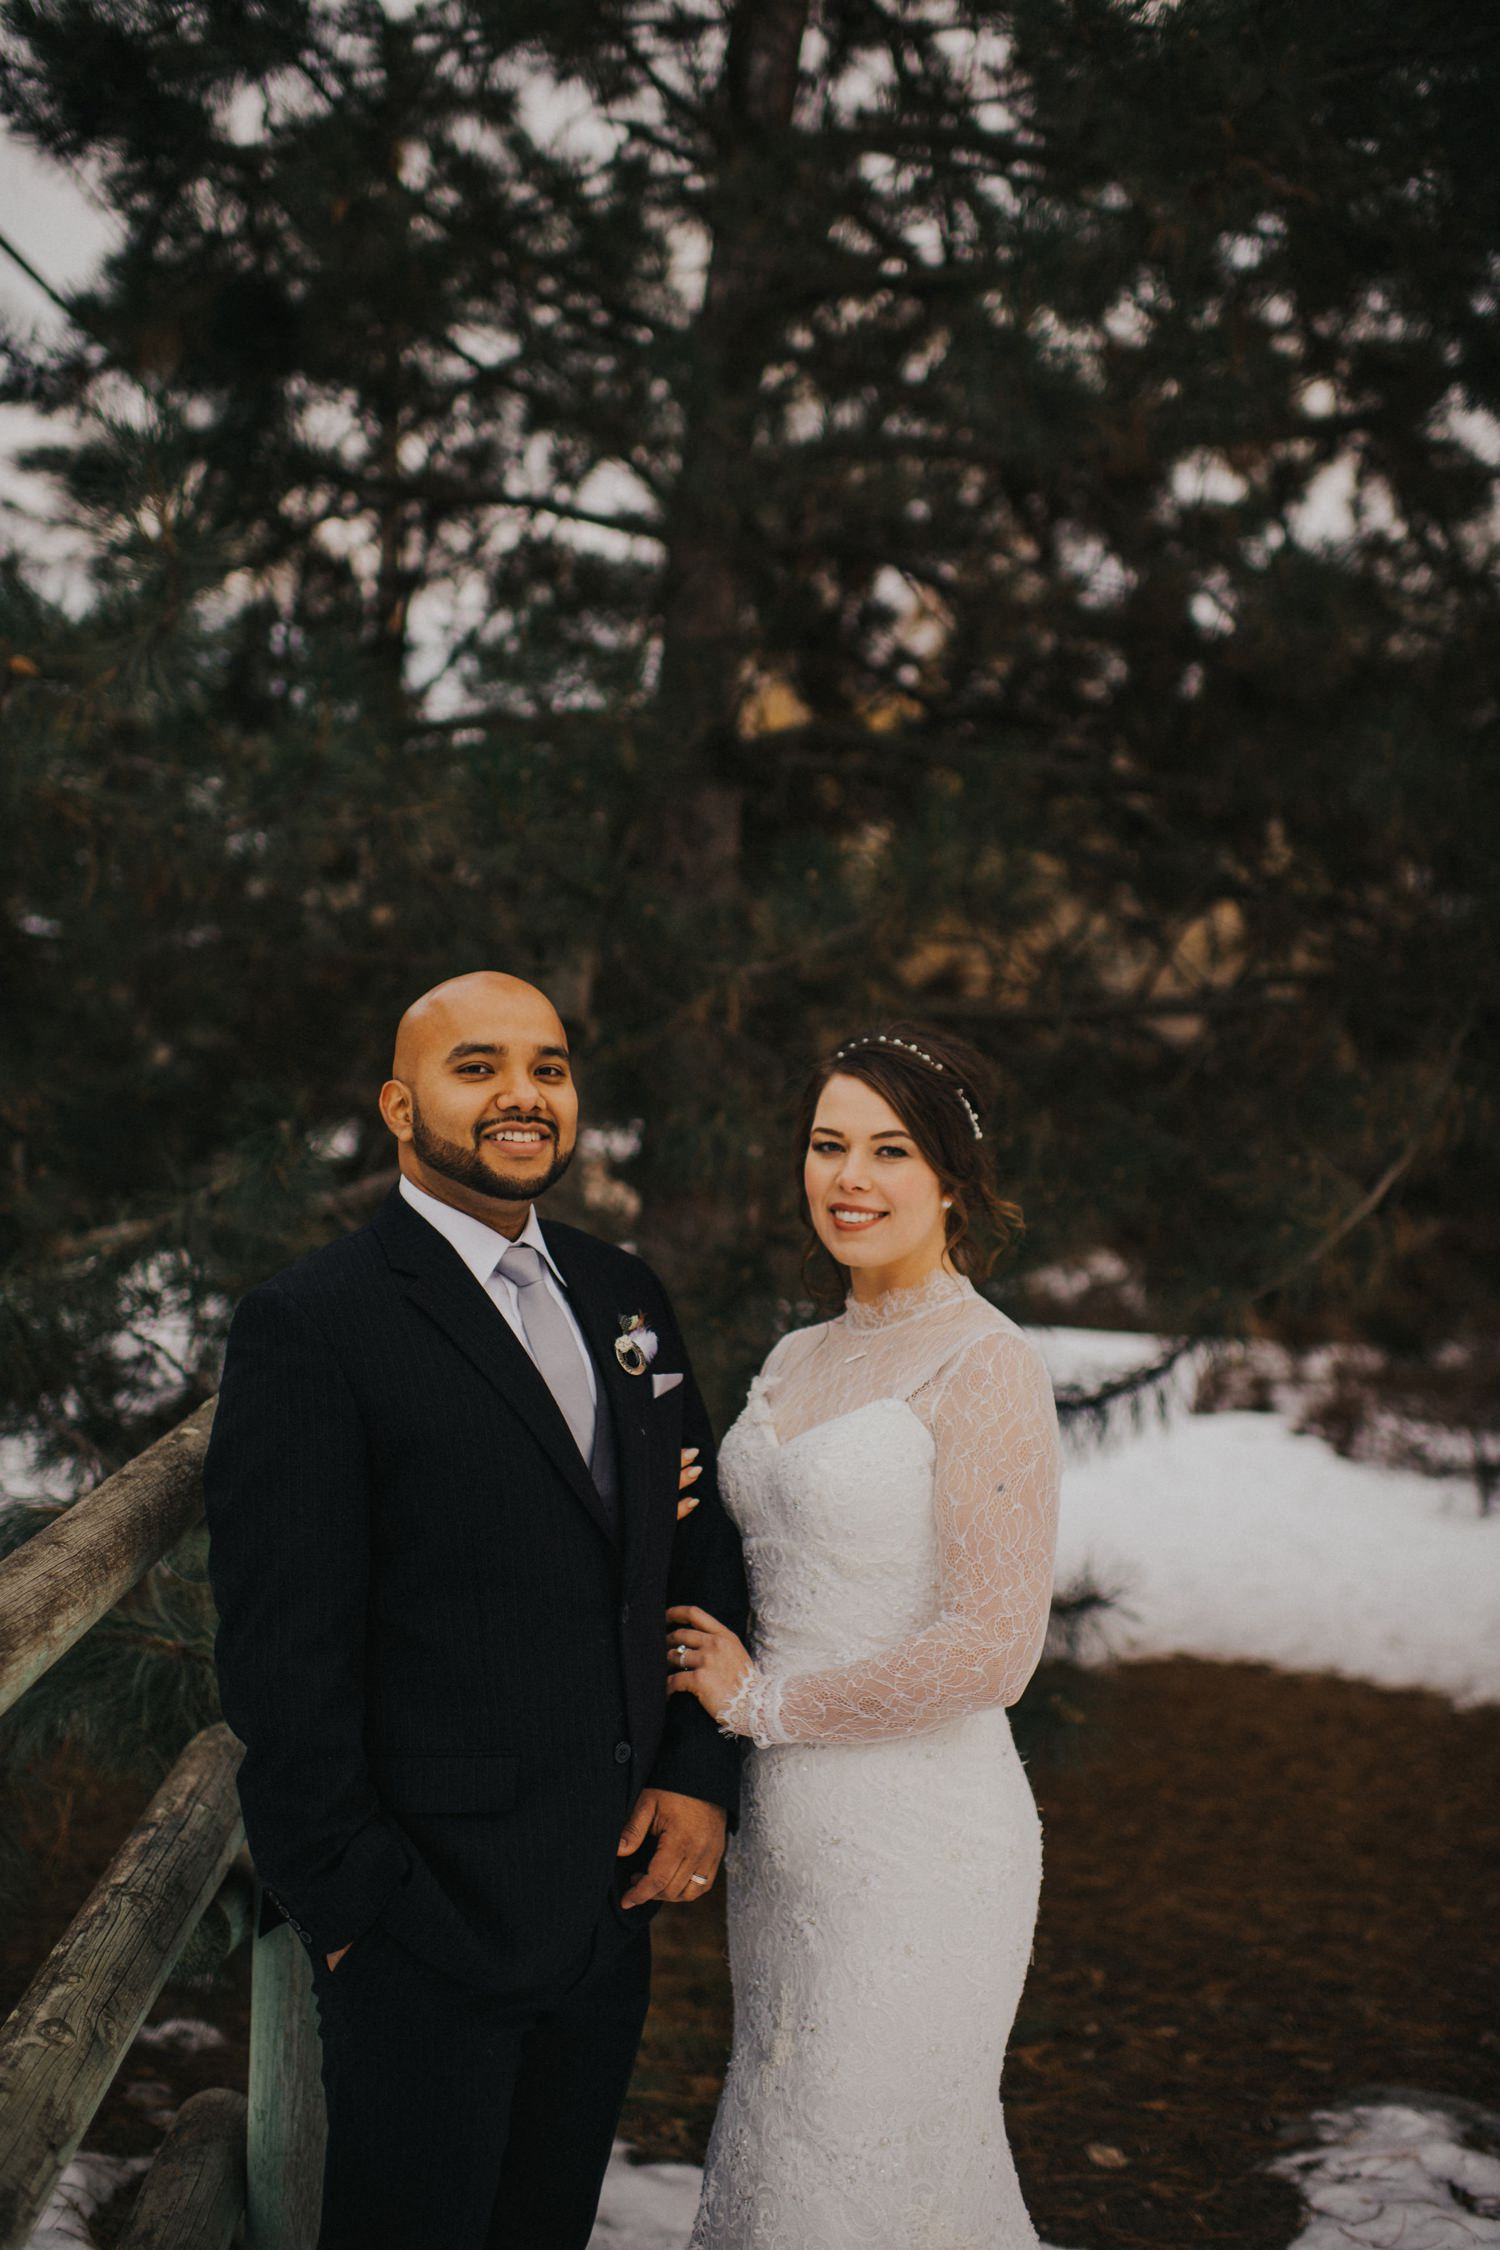 Kelowna Winter Wedding - Joelsview Photography_0098